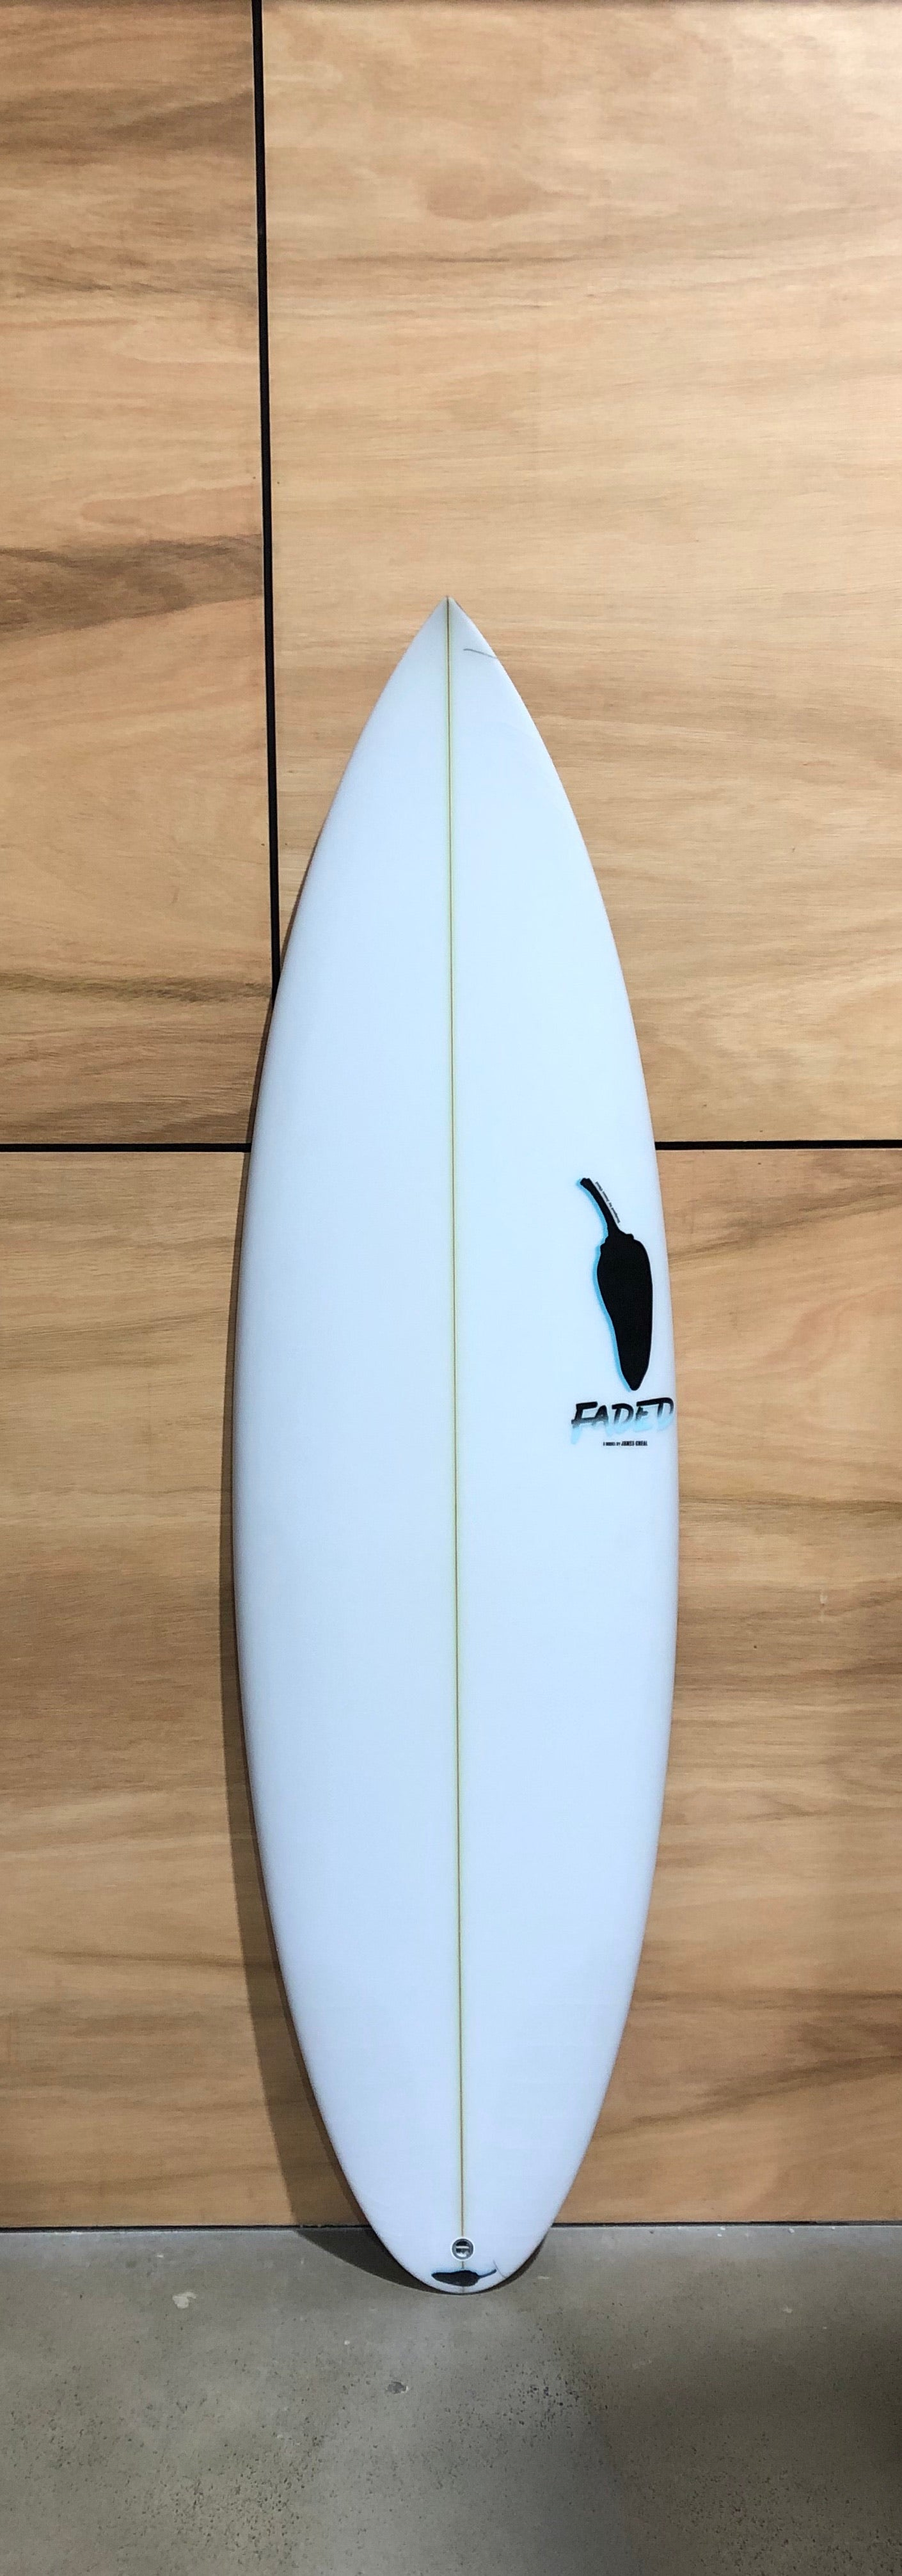 Chilli Faded - Built In The West - Board Store ChilliSurfboard